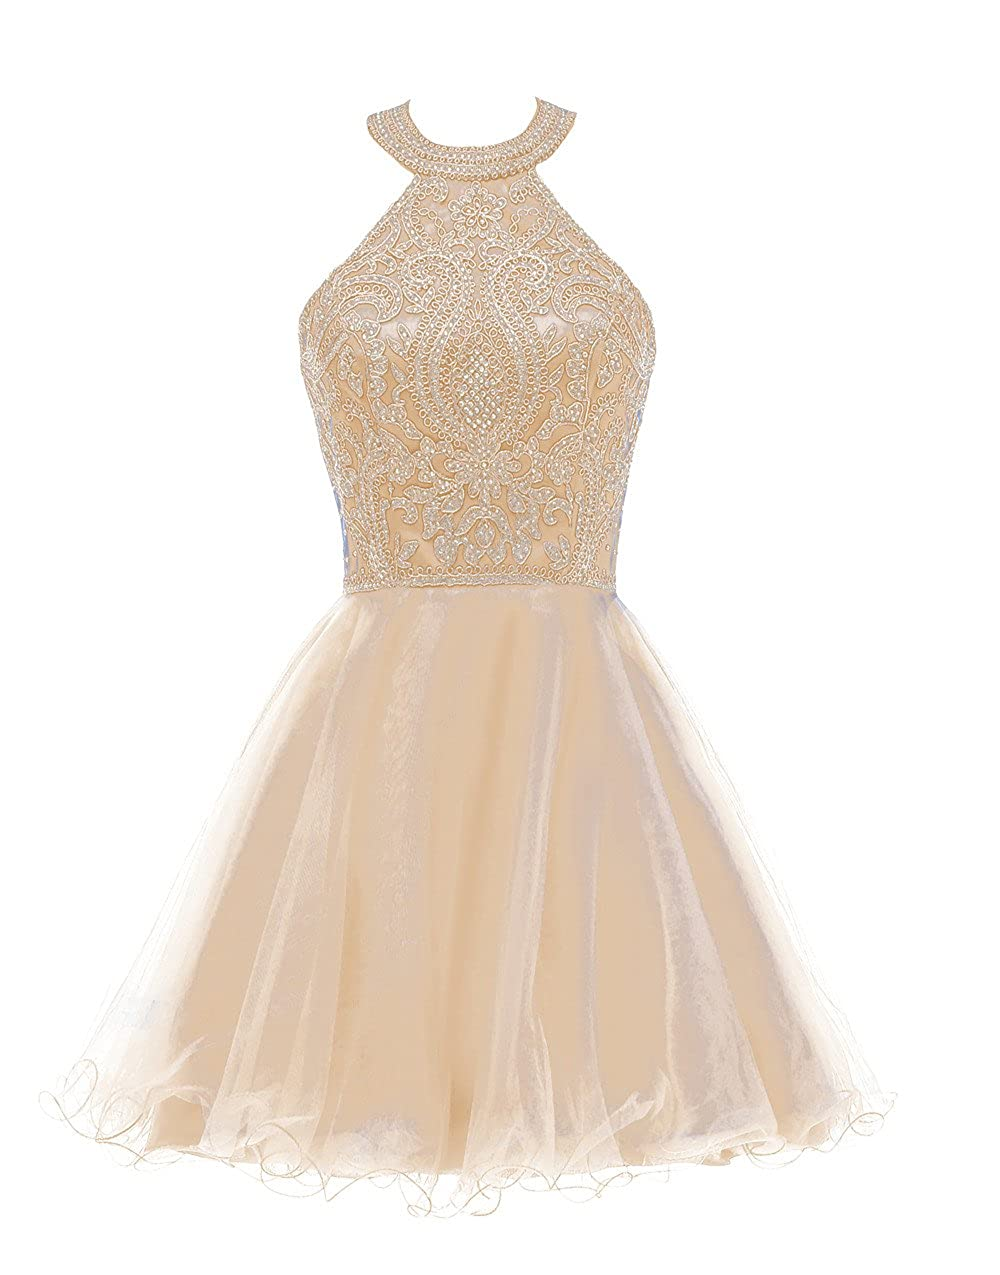 Champagne Huifany Short gold Lace Prom Homecoming Dresses Appliques Beads Prom Party Gowns